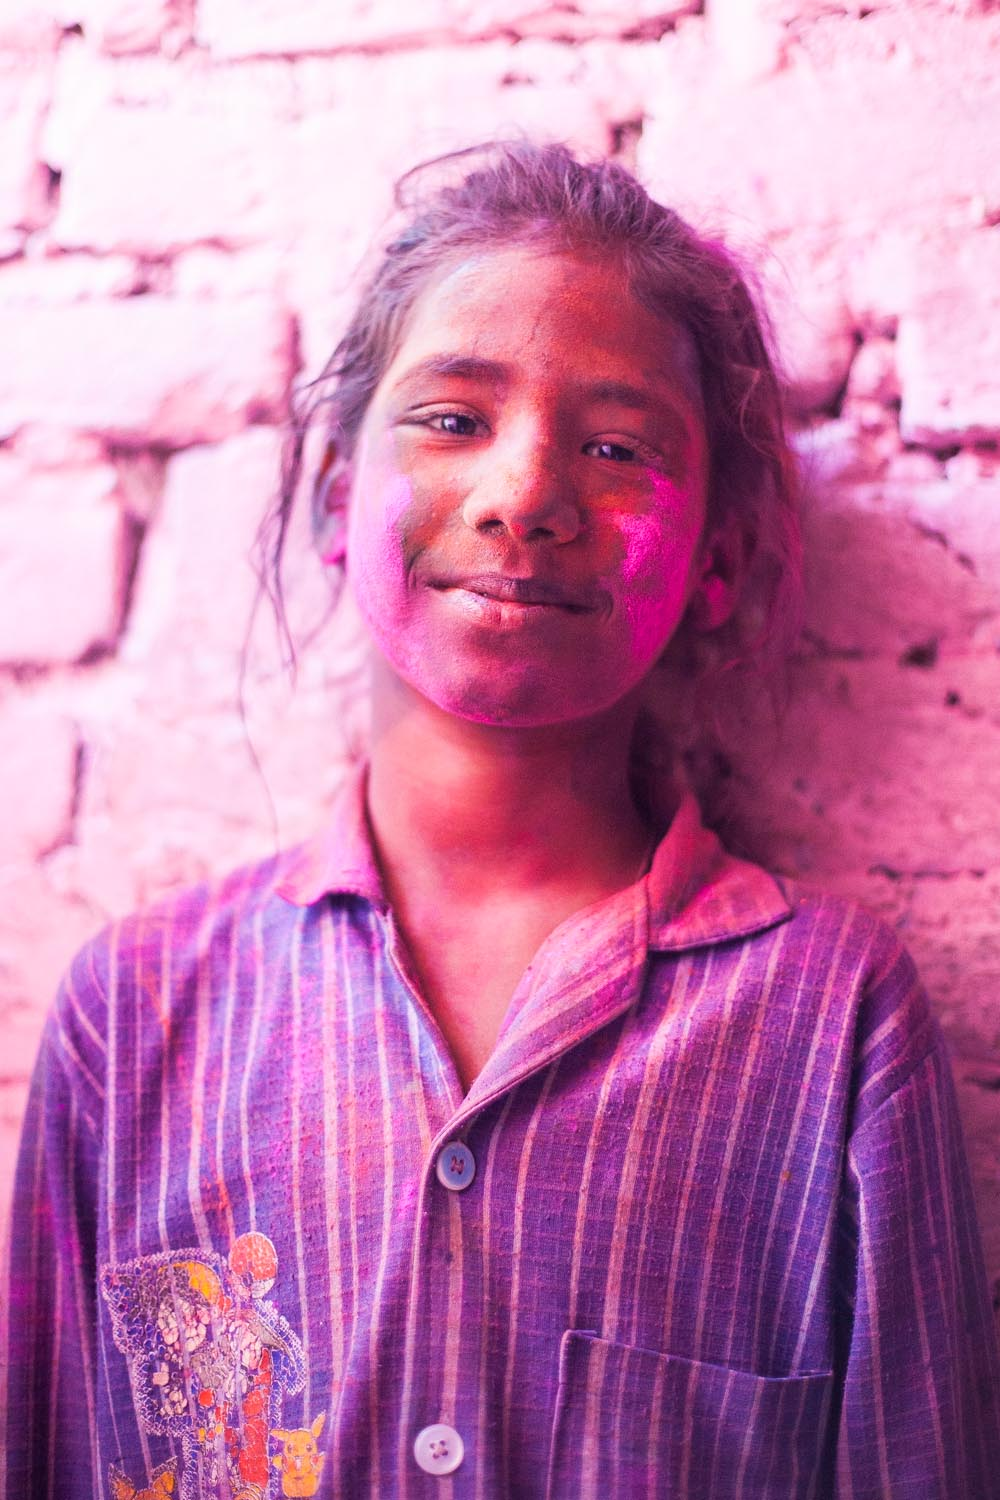 Holi has recently been appropriated in Canada, the US and parts of Europe in many events such as the color run, and run or dye.